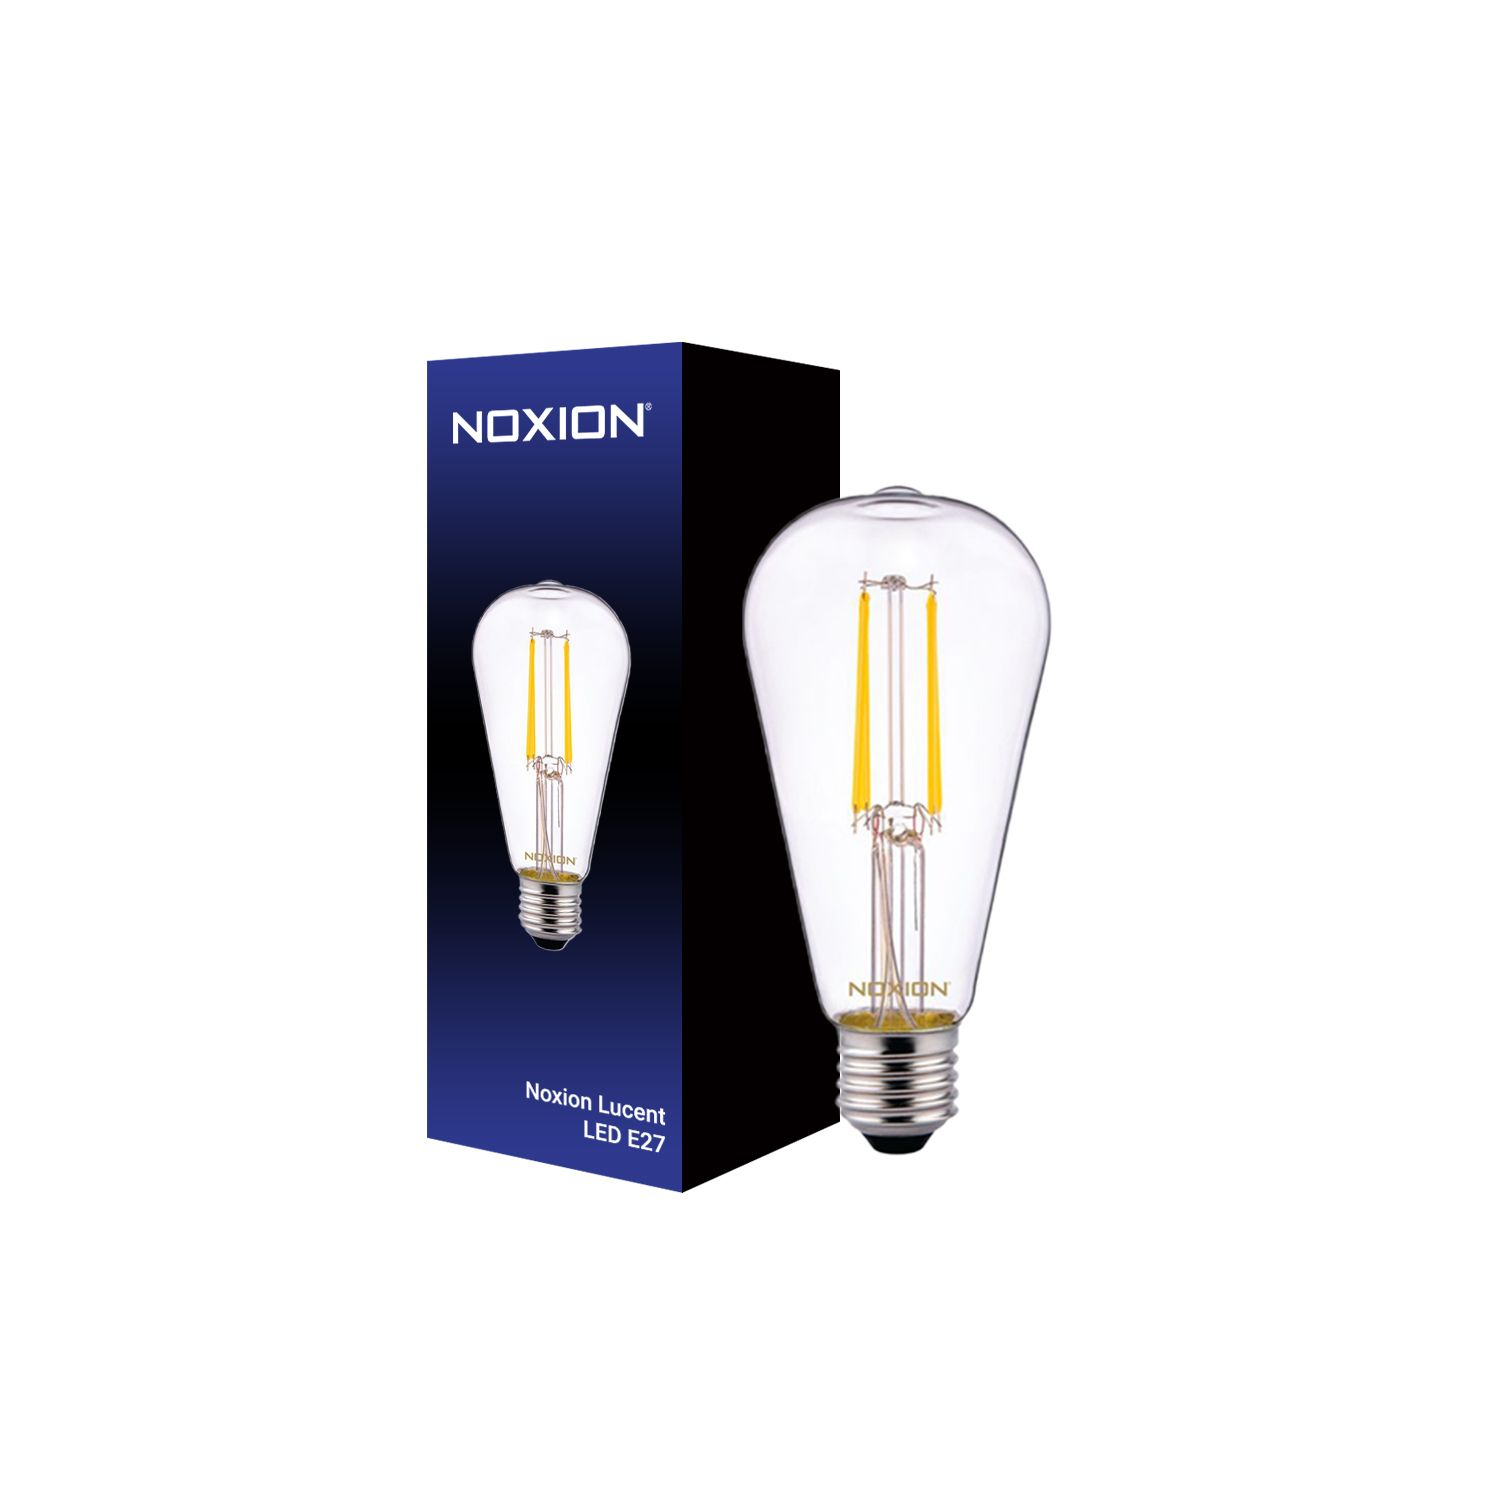 Noxion Lucent Classic LED Filament ST64 E27 4W 827 Clear | Extra Warm White - Replaces 40W